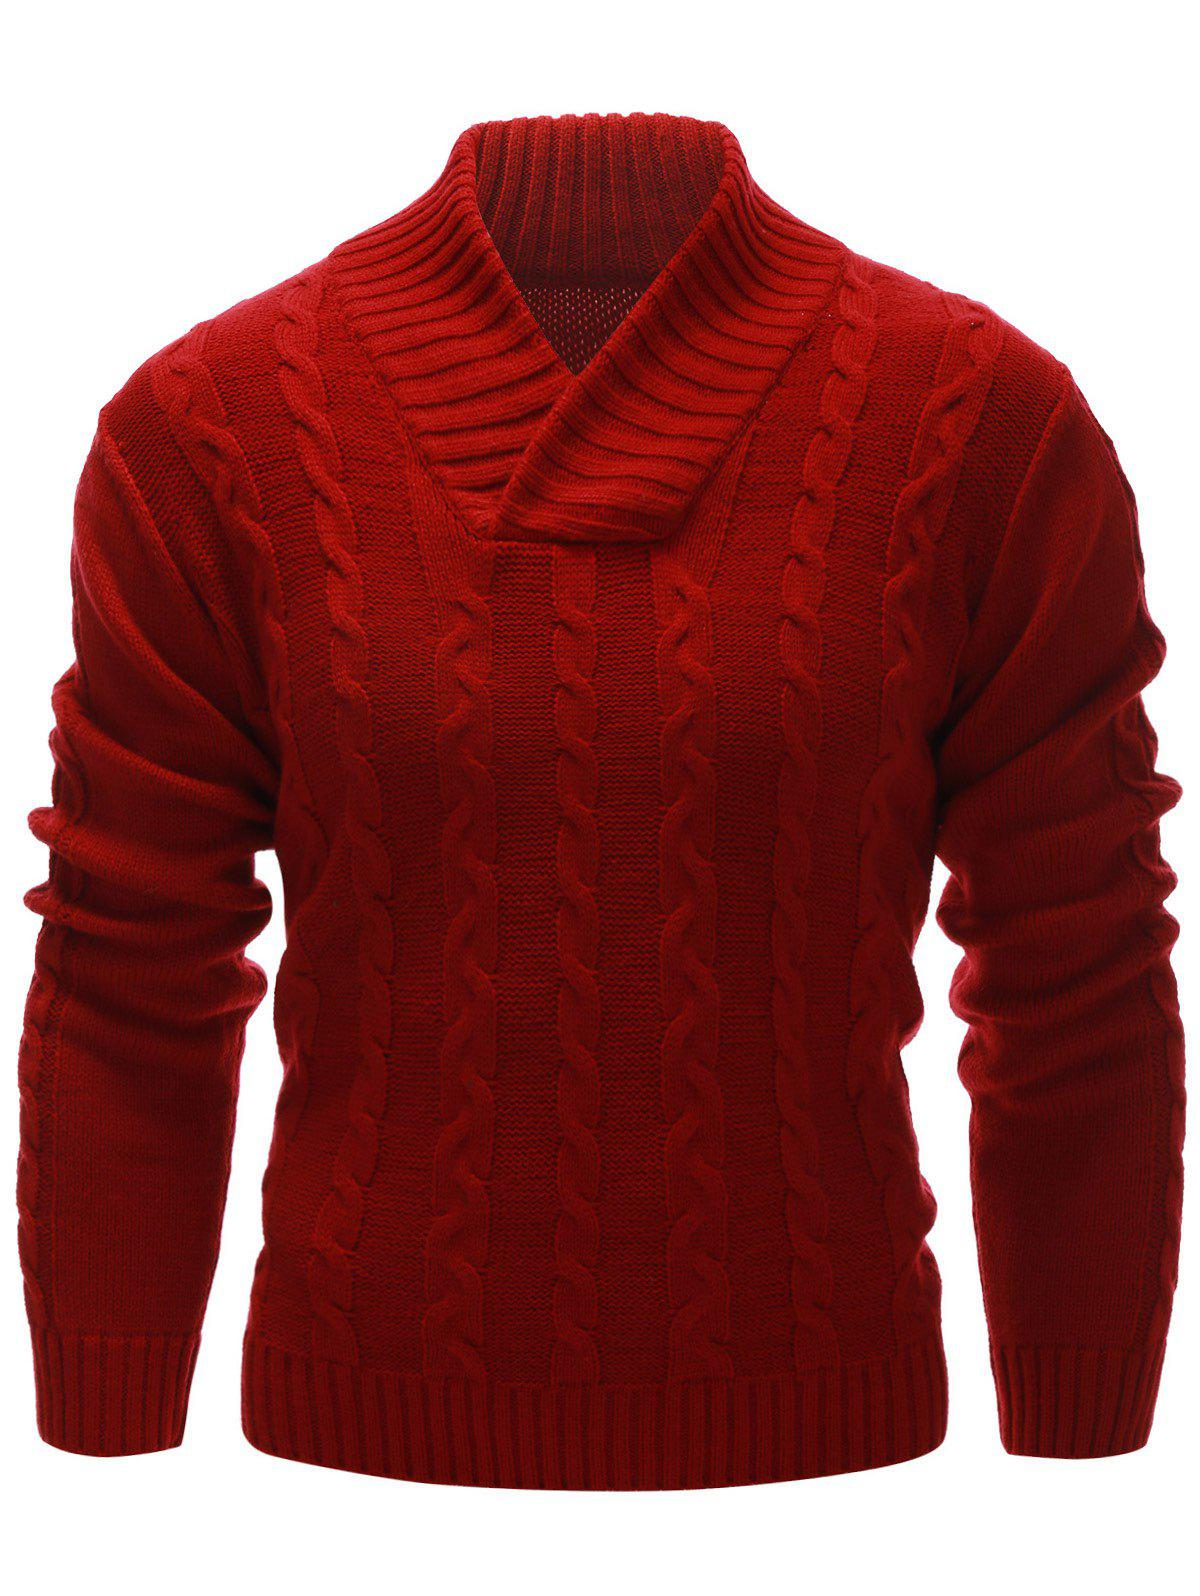 Cable Knit Rib Hem Pullover Sweater 201281101